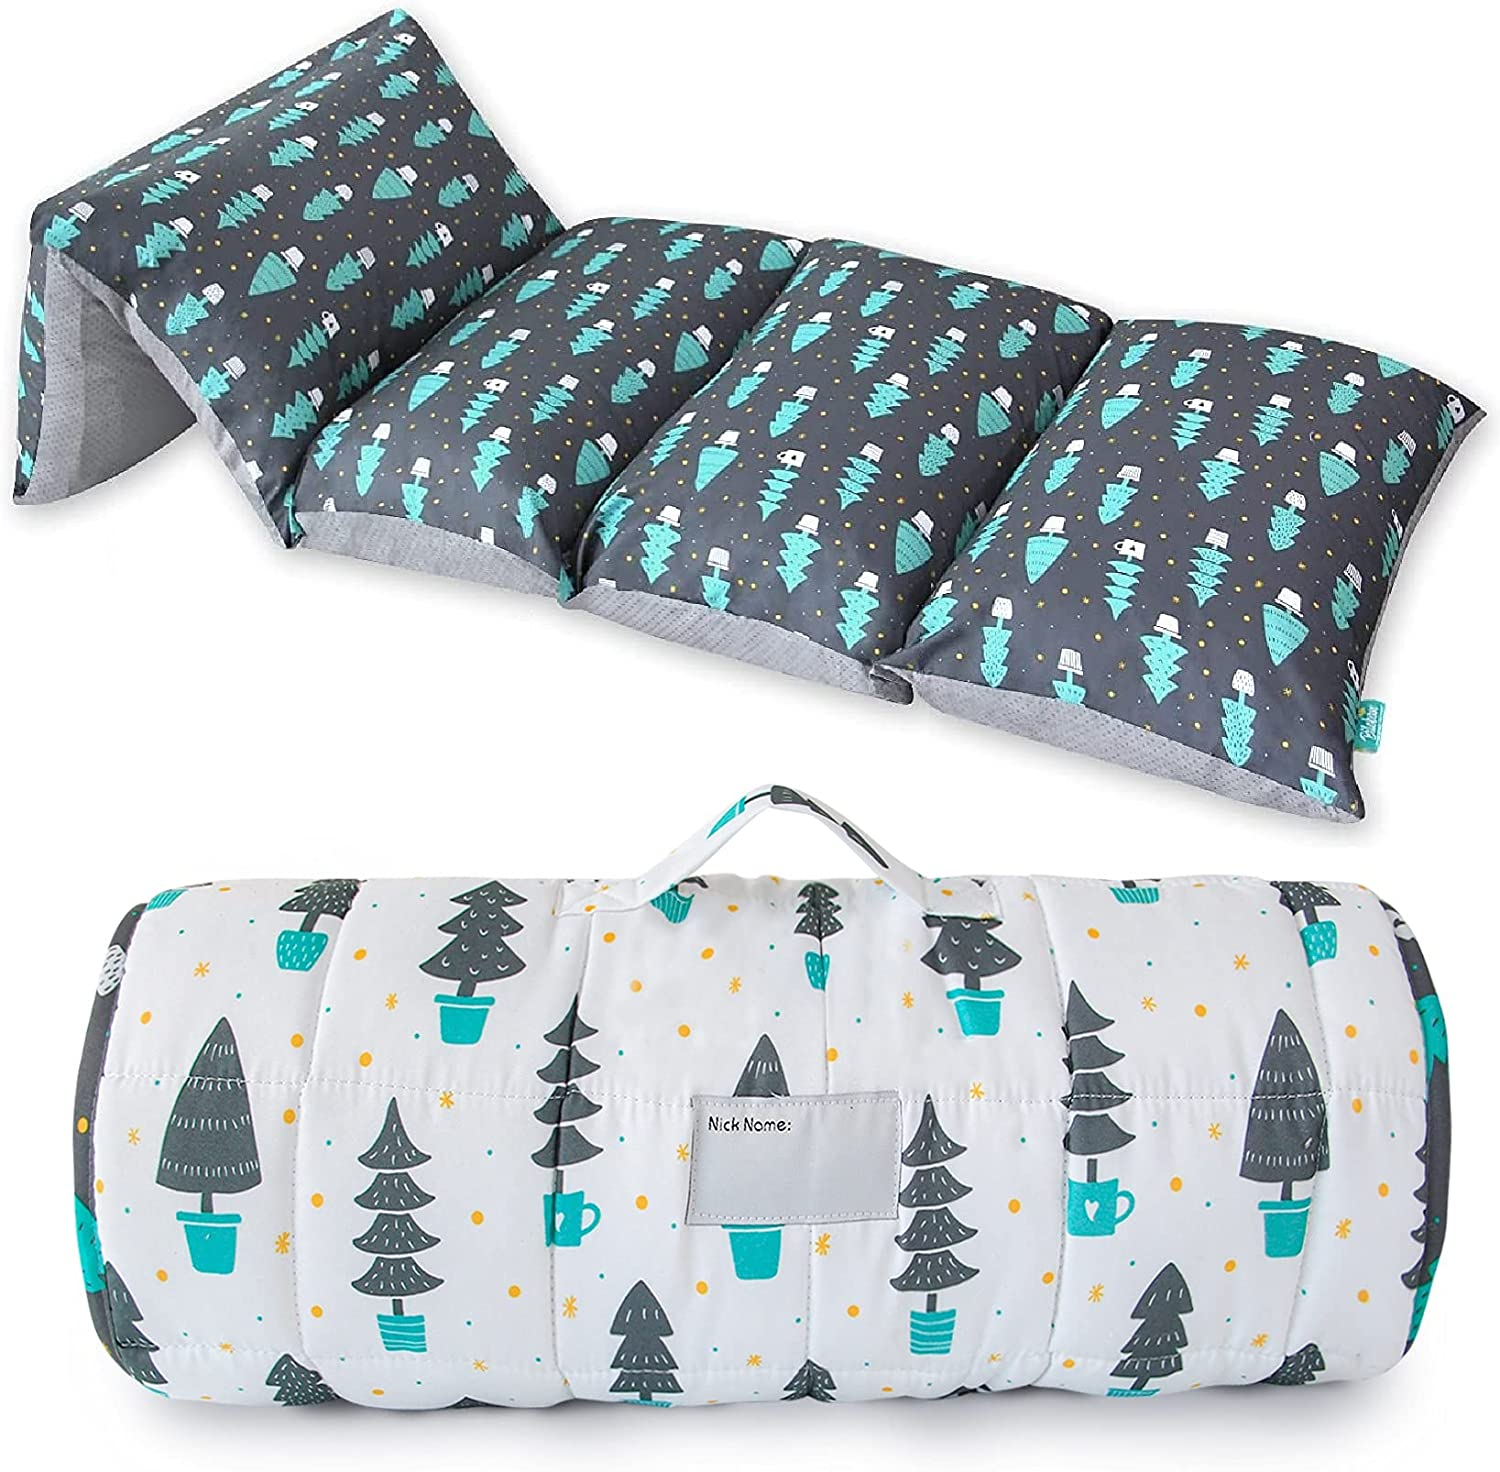 Toddler Nap Mat 5 Pillow Cover White W Sleepover Las Vegas Mall and Selling for Dark